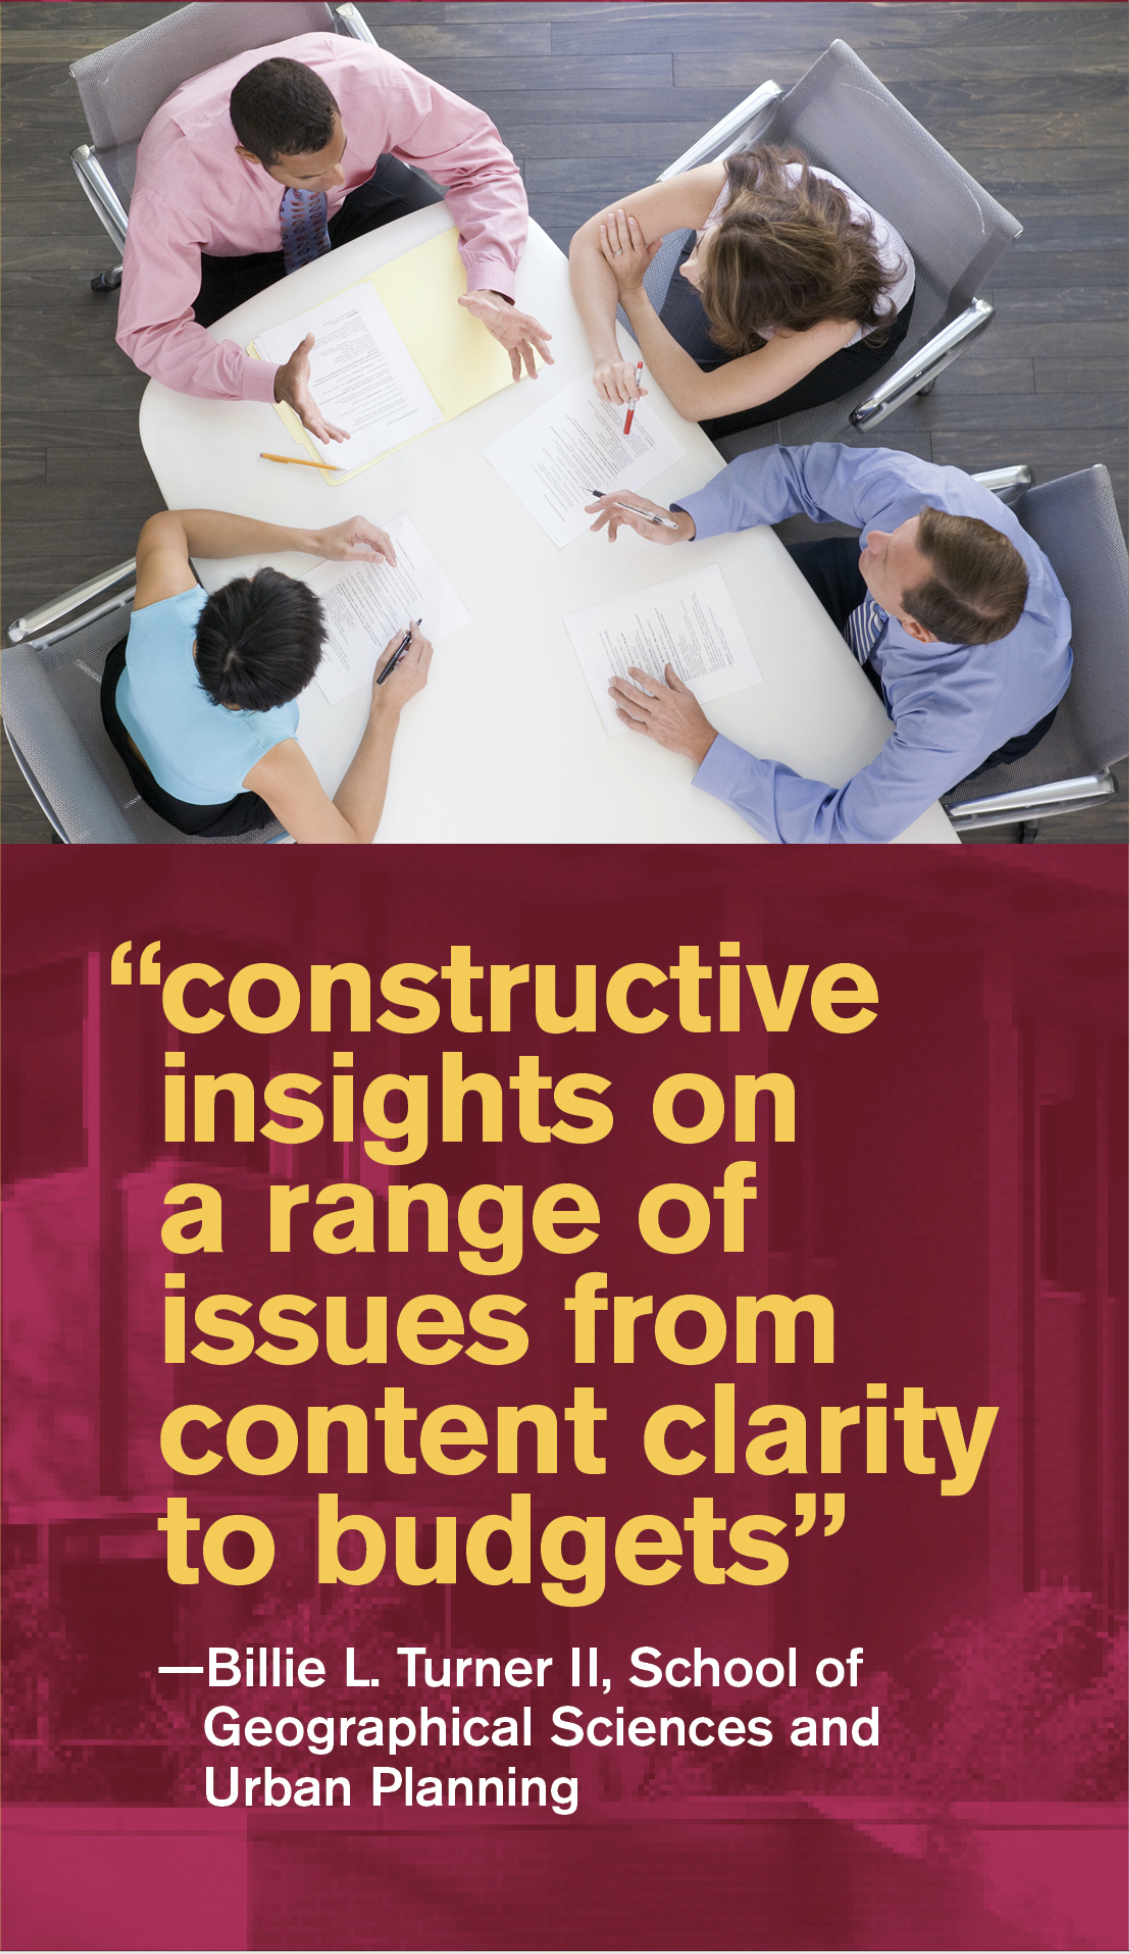 Constructive insights on a range of issues from a content clarity to budgets